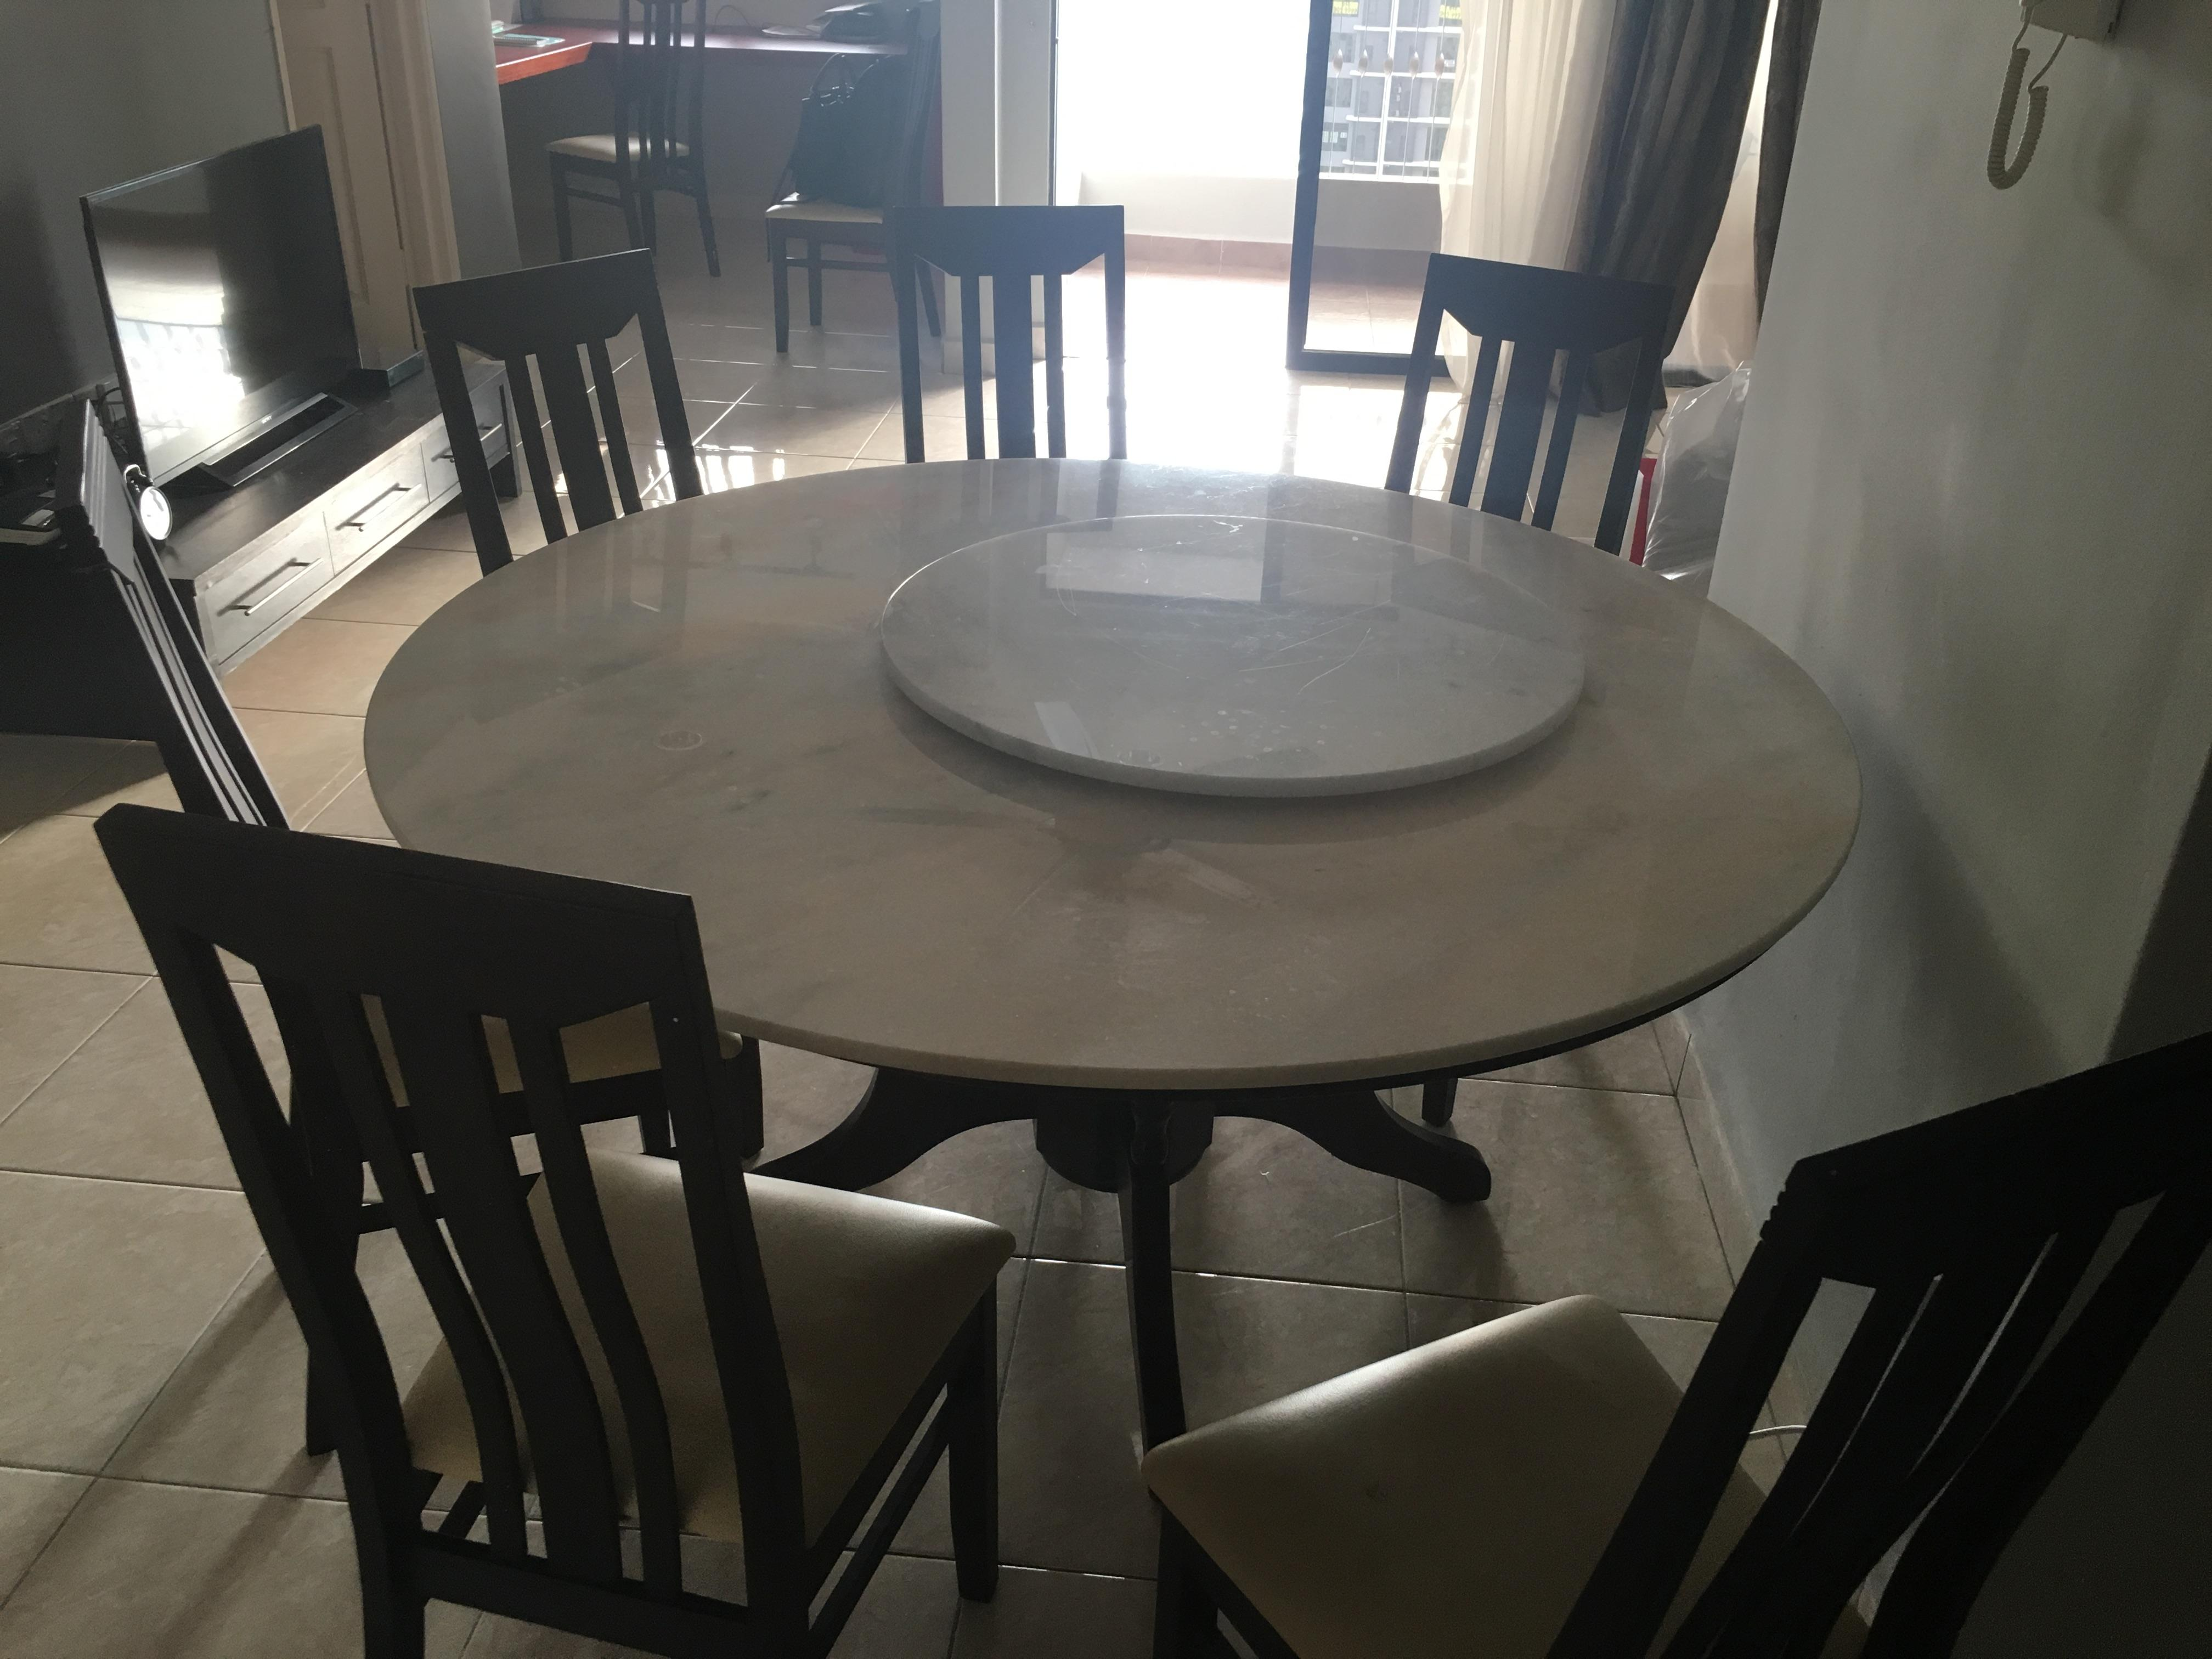 8 Seater Round Marble Dining Table For Sale Secondhand My